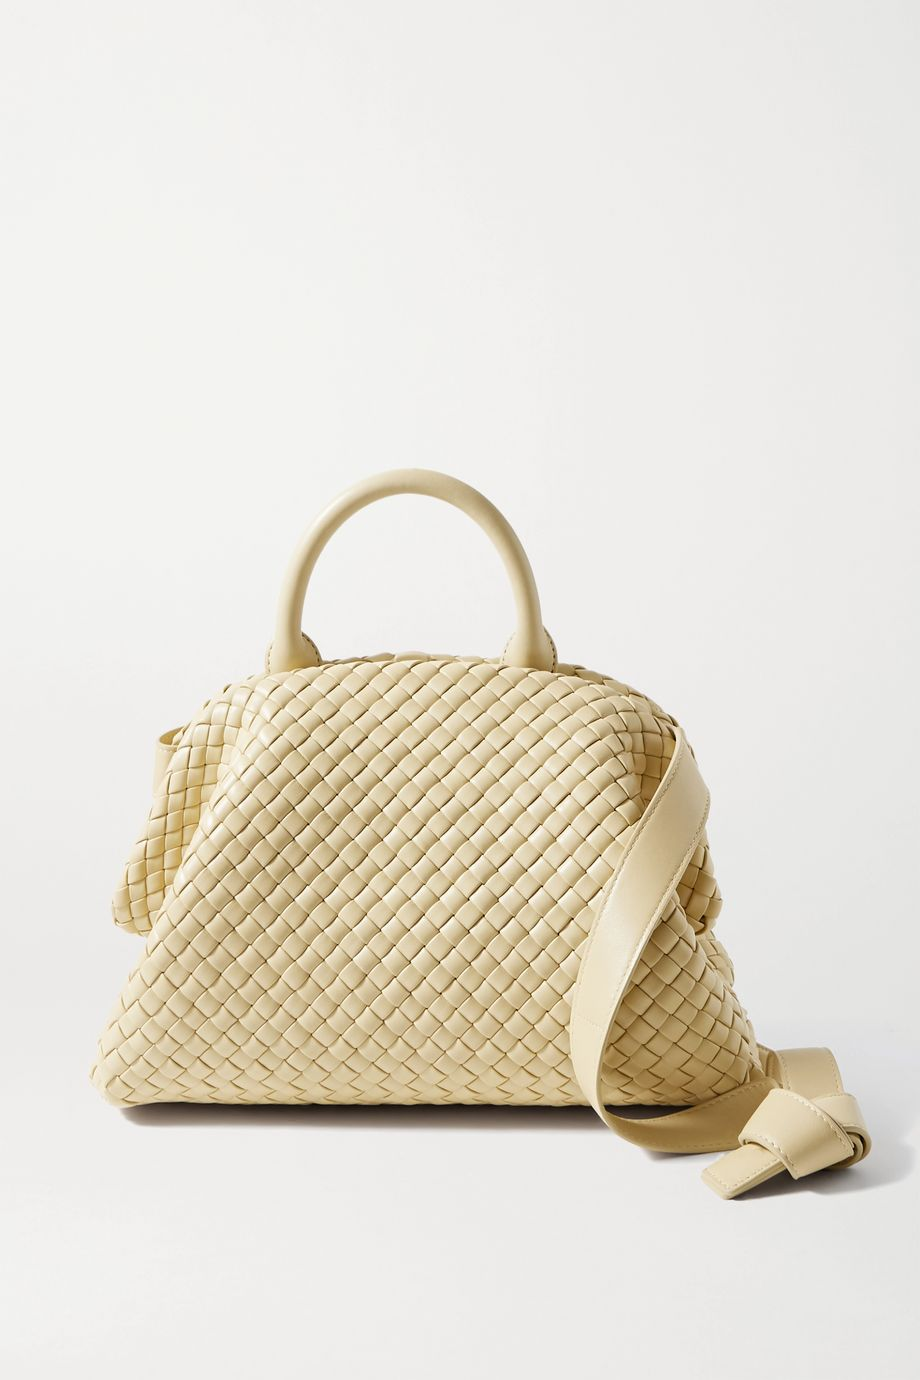 Bottega Veneta Sac à main en cuir intrecciato The Handle